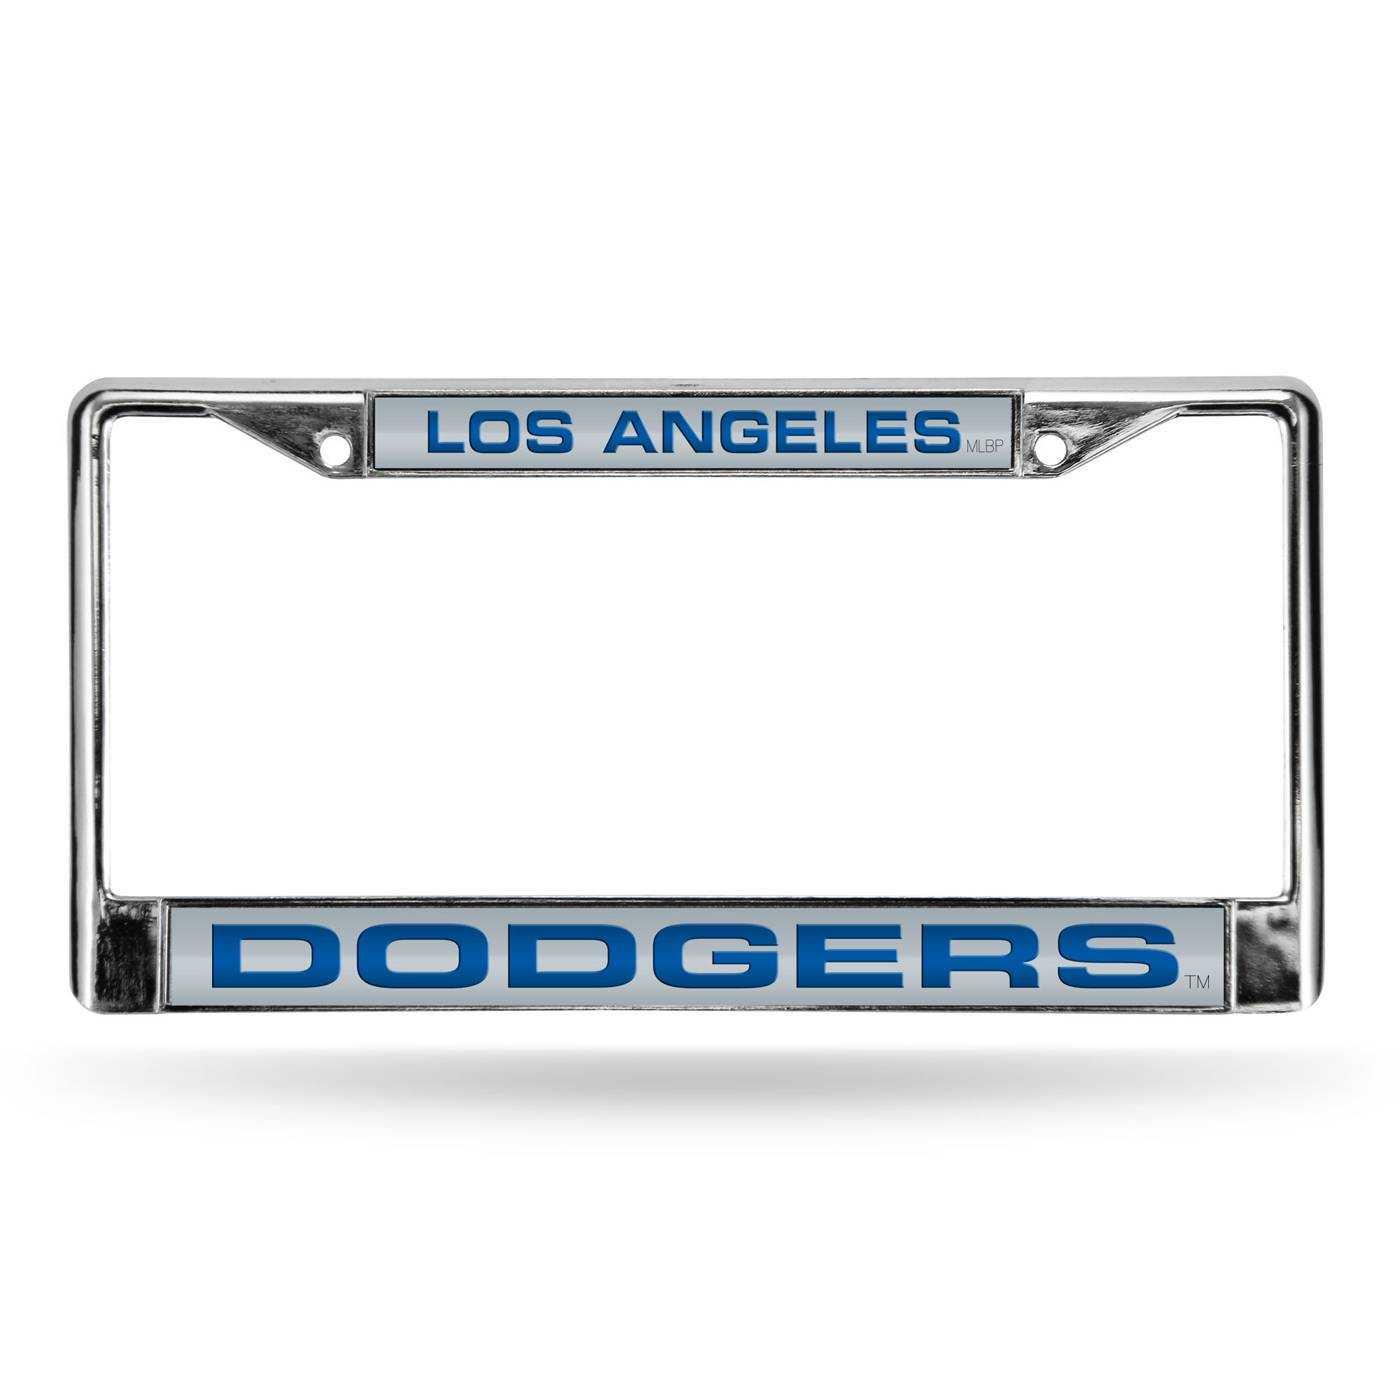 decked out with shiny laser cut acrylic inserts the los angeles dodgers laser chrome license plate frame will make you a stand out fan - Dodgers License Plate Frame